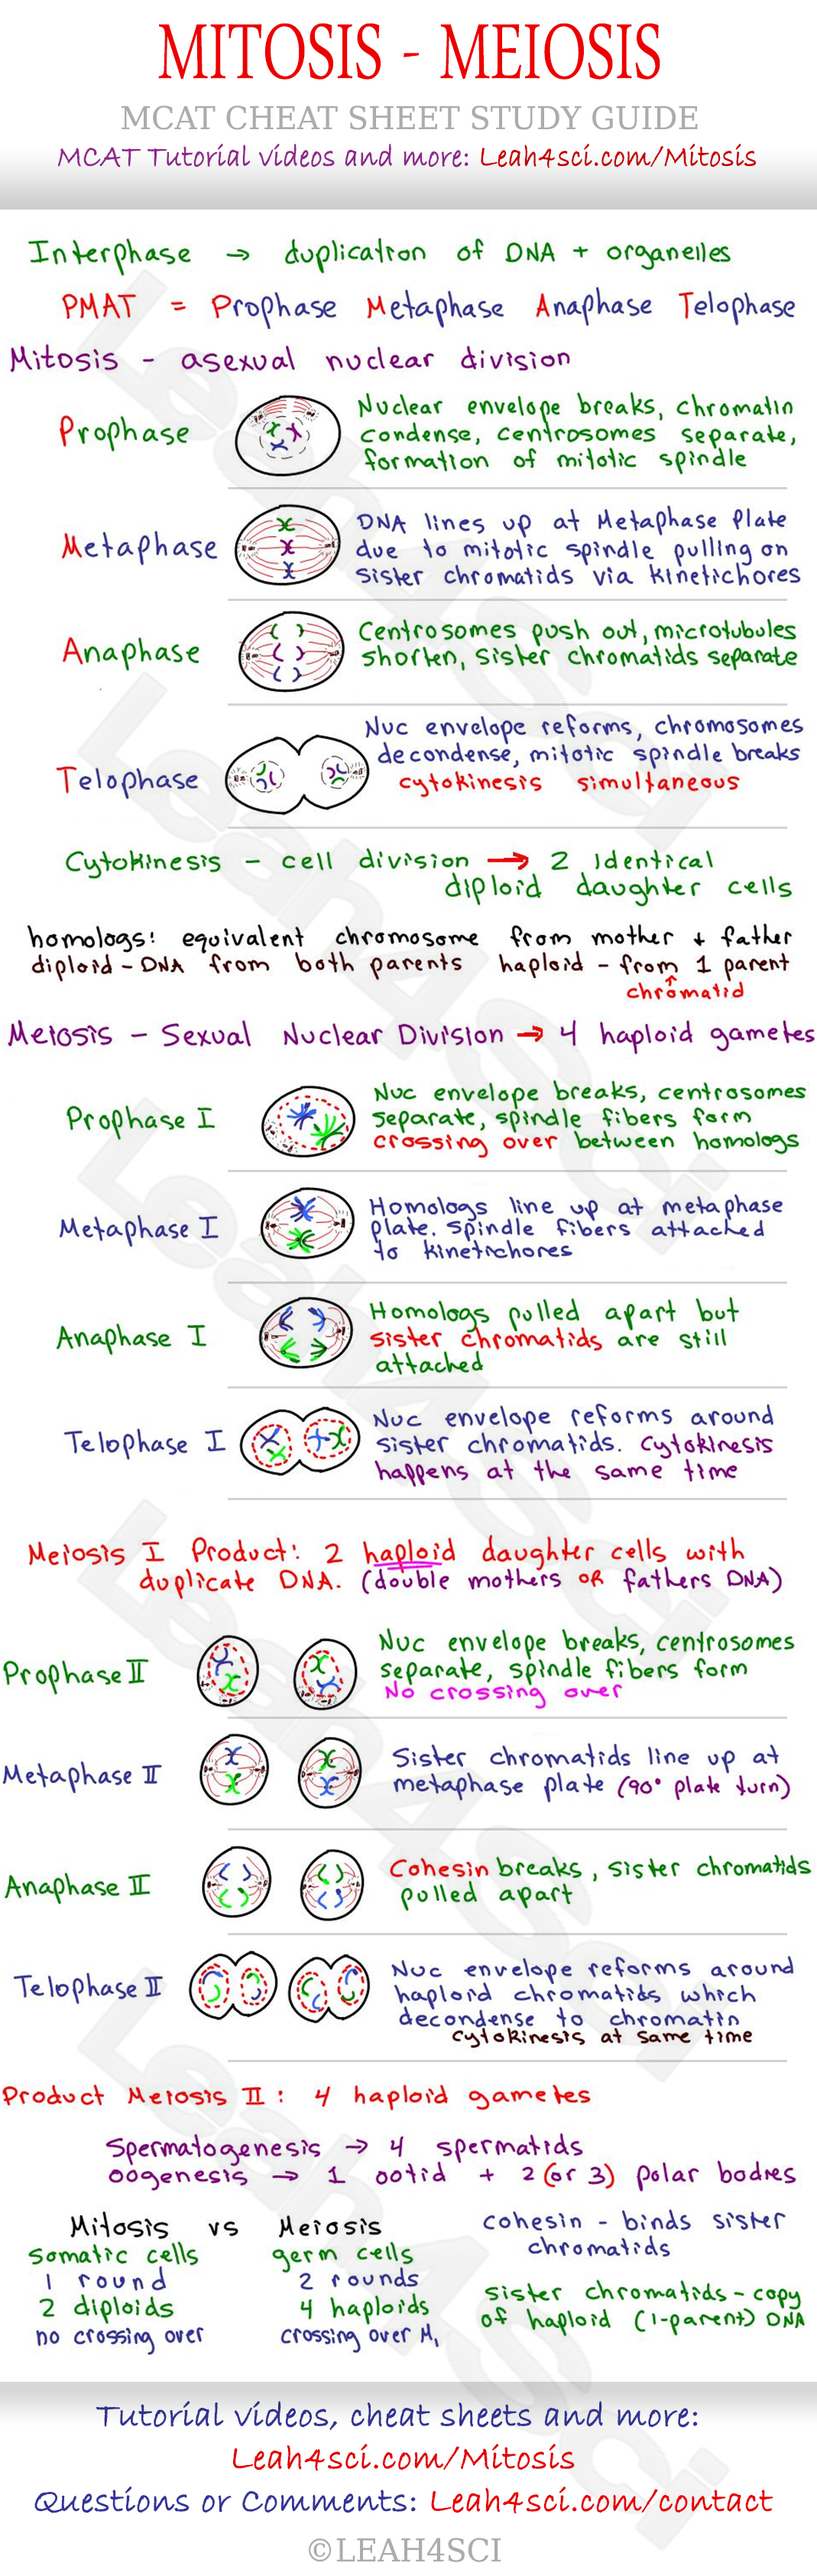 Mitosis and Meiosis MCAT Cheat Sheet Study Guide -